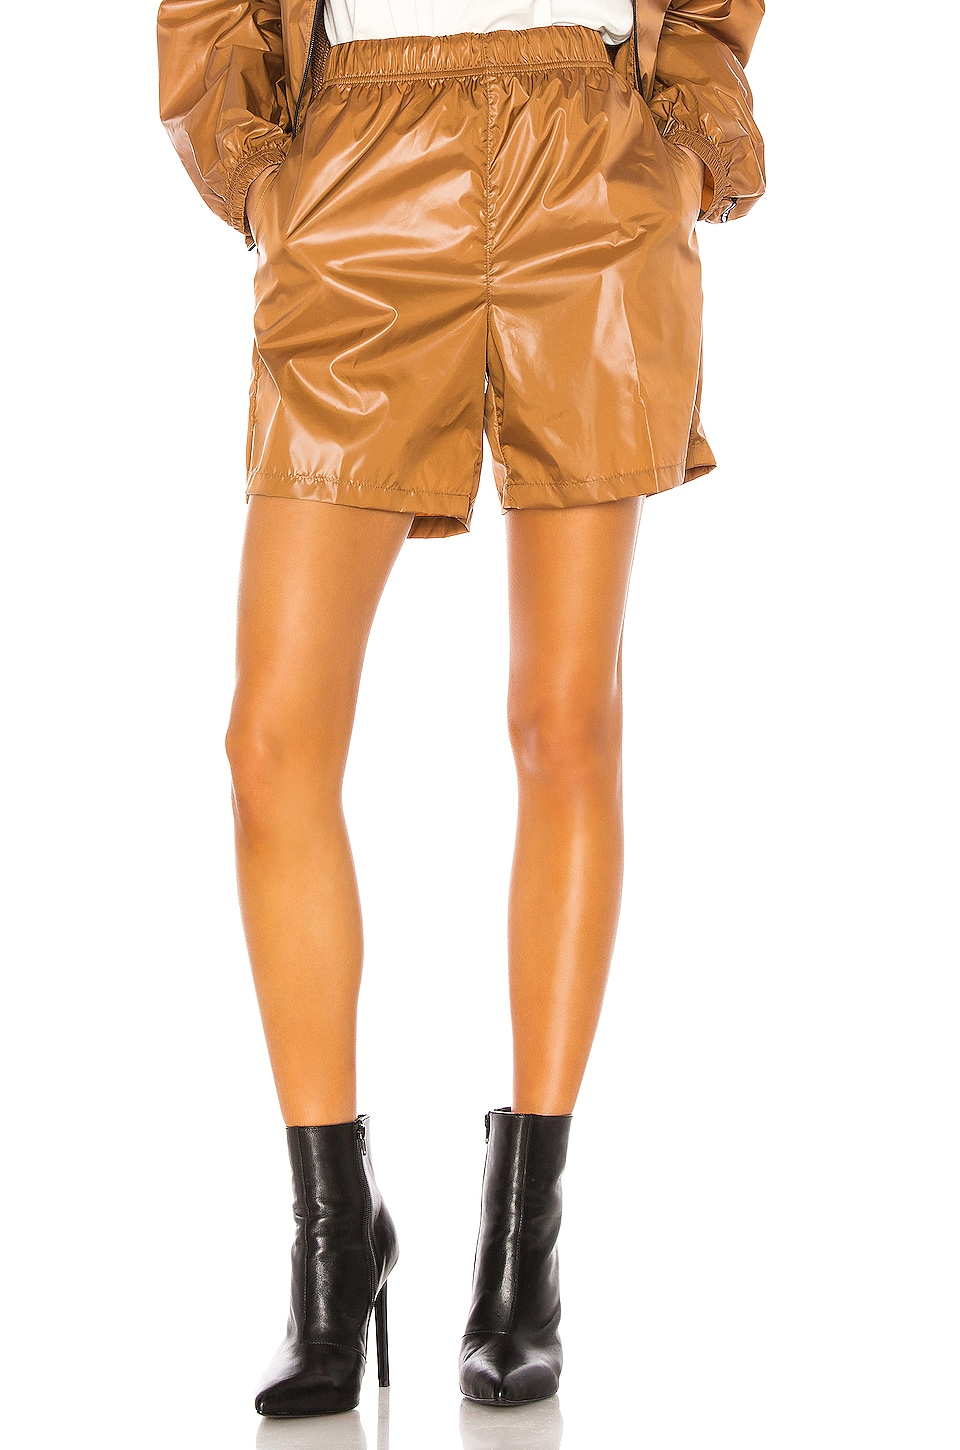 Stussy Langley Shiny Baggy Short in Tan